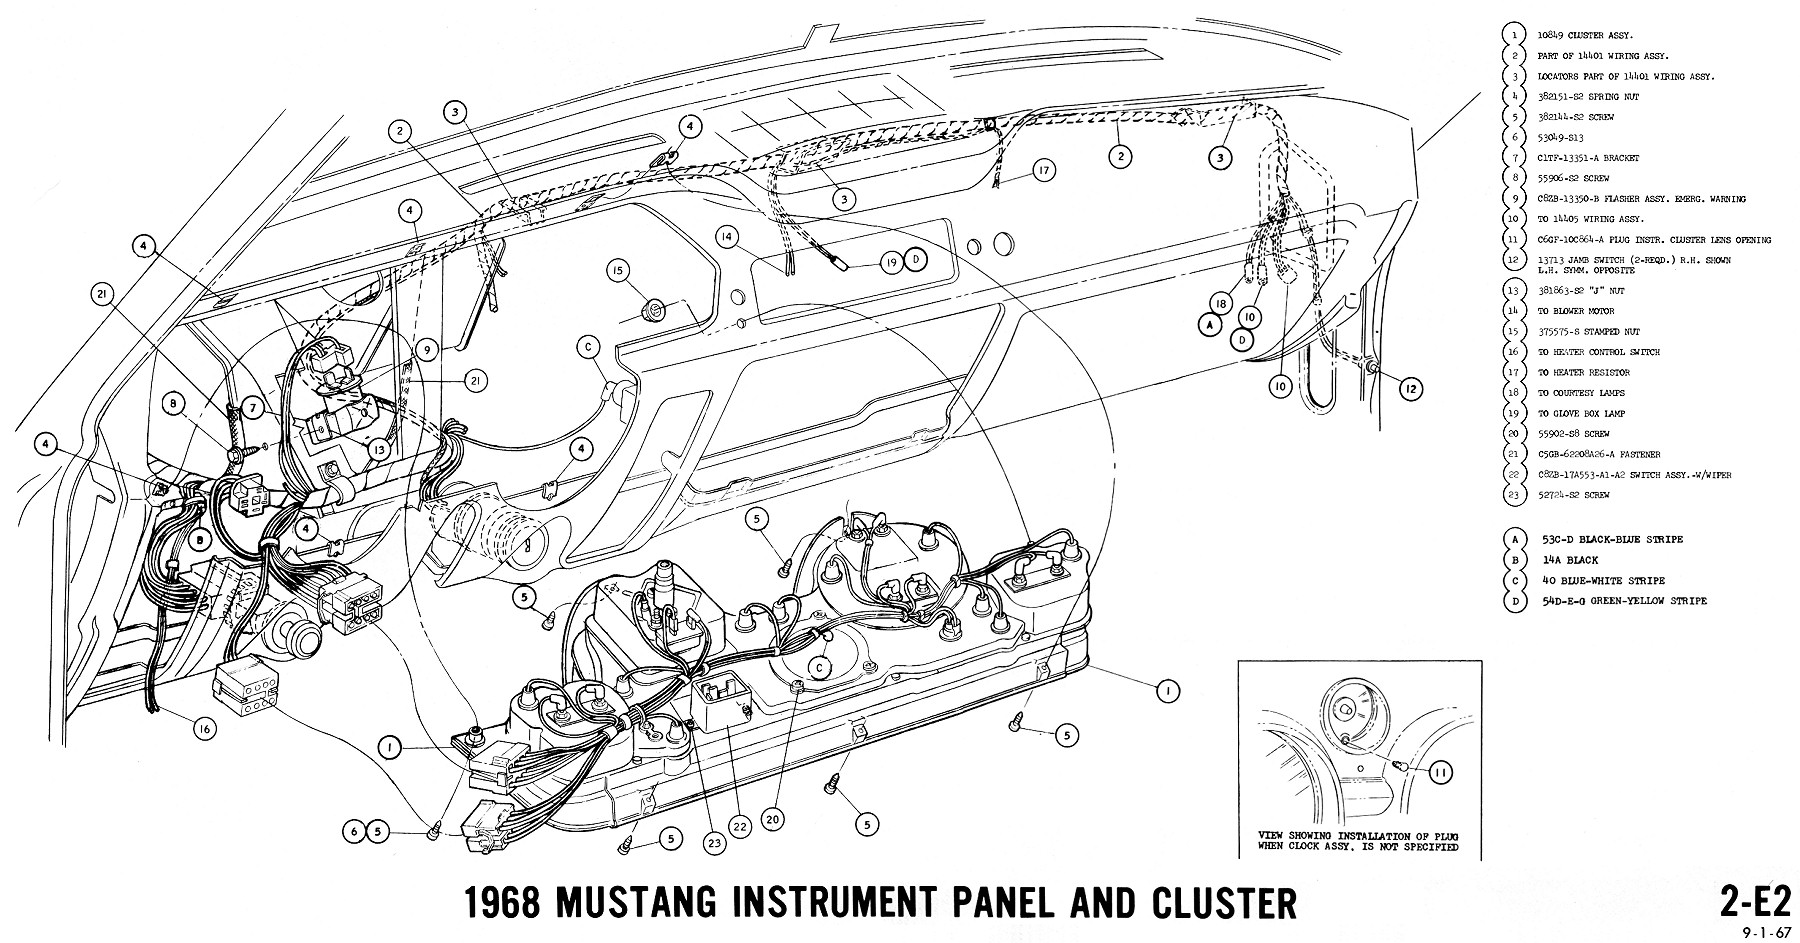 ms4_405] 68 mustang dash wiring diagram | wave-advice wiring diagram site |  wave-advice.goshstore.it  goshstore.it